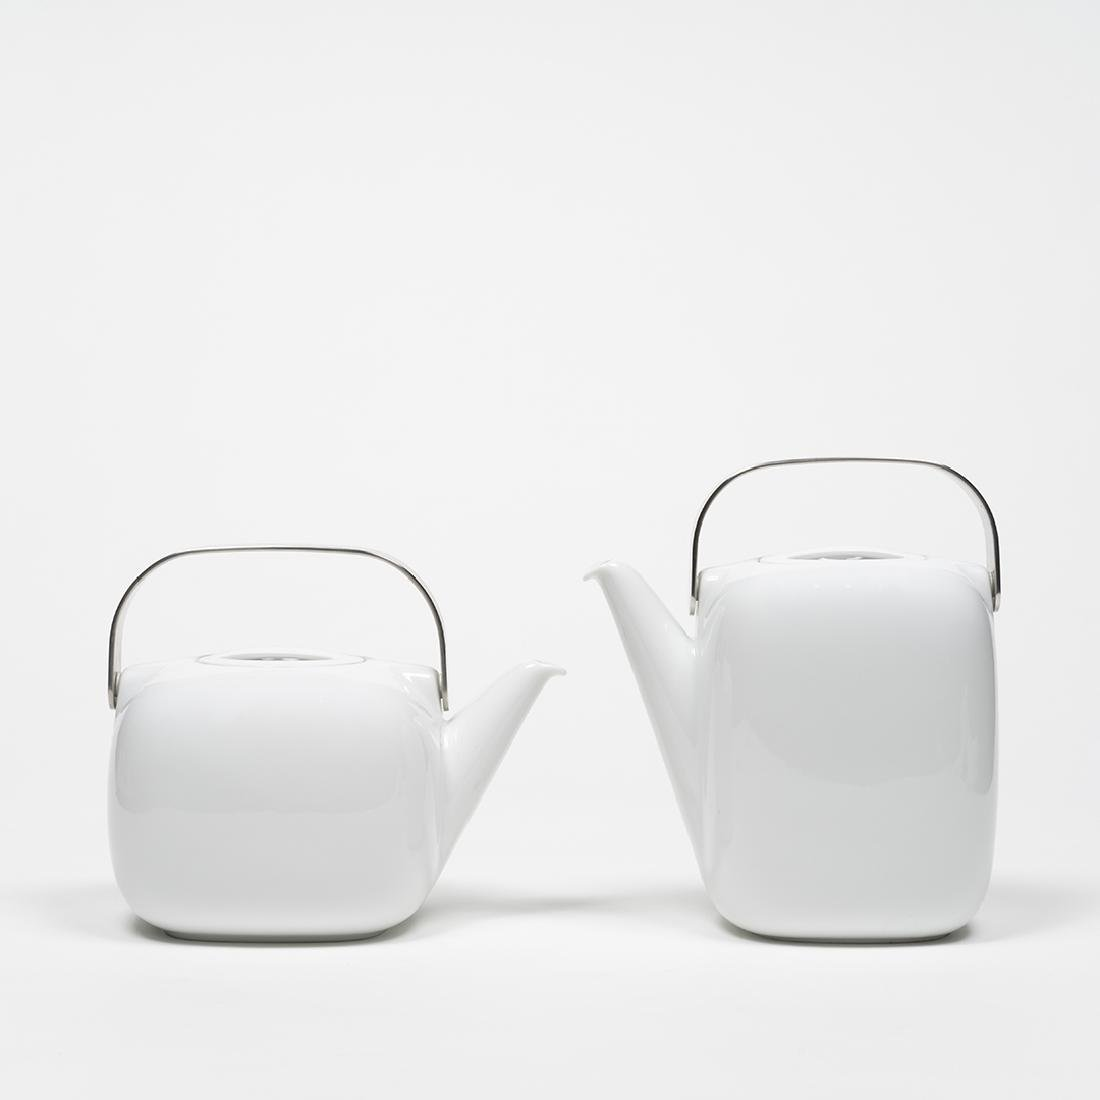 Timo Sarpaneva Suomi Coffee and Tea Pots (2)